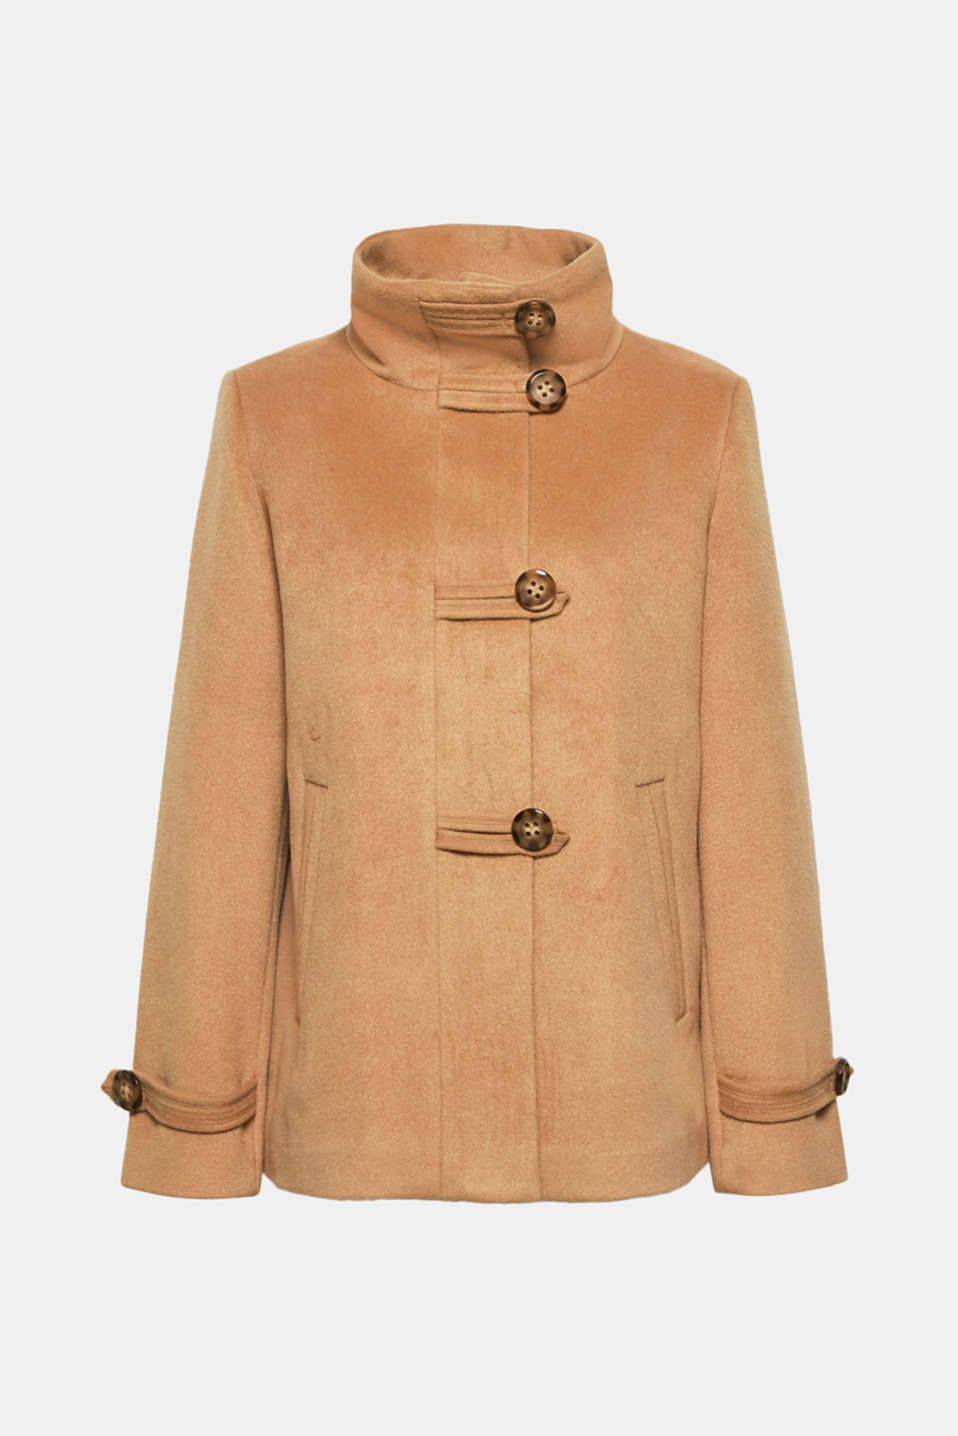 Jackets outdoor woven, CAMEL 5, detail image number 6